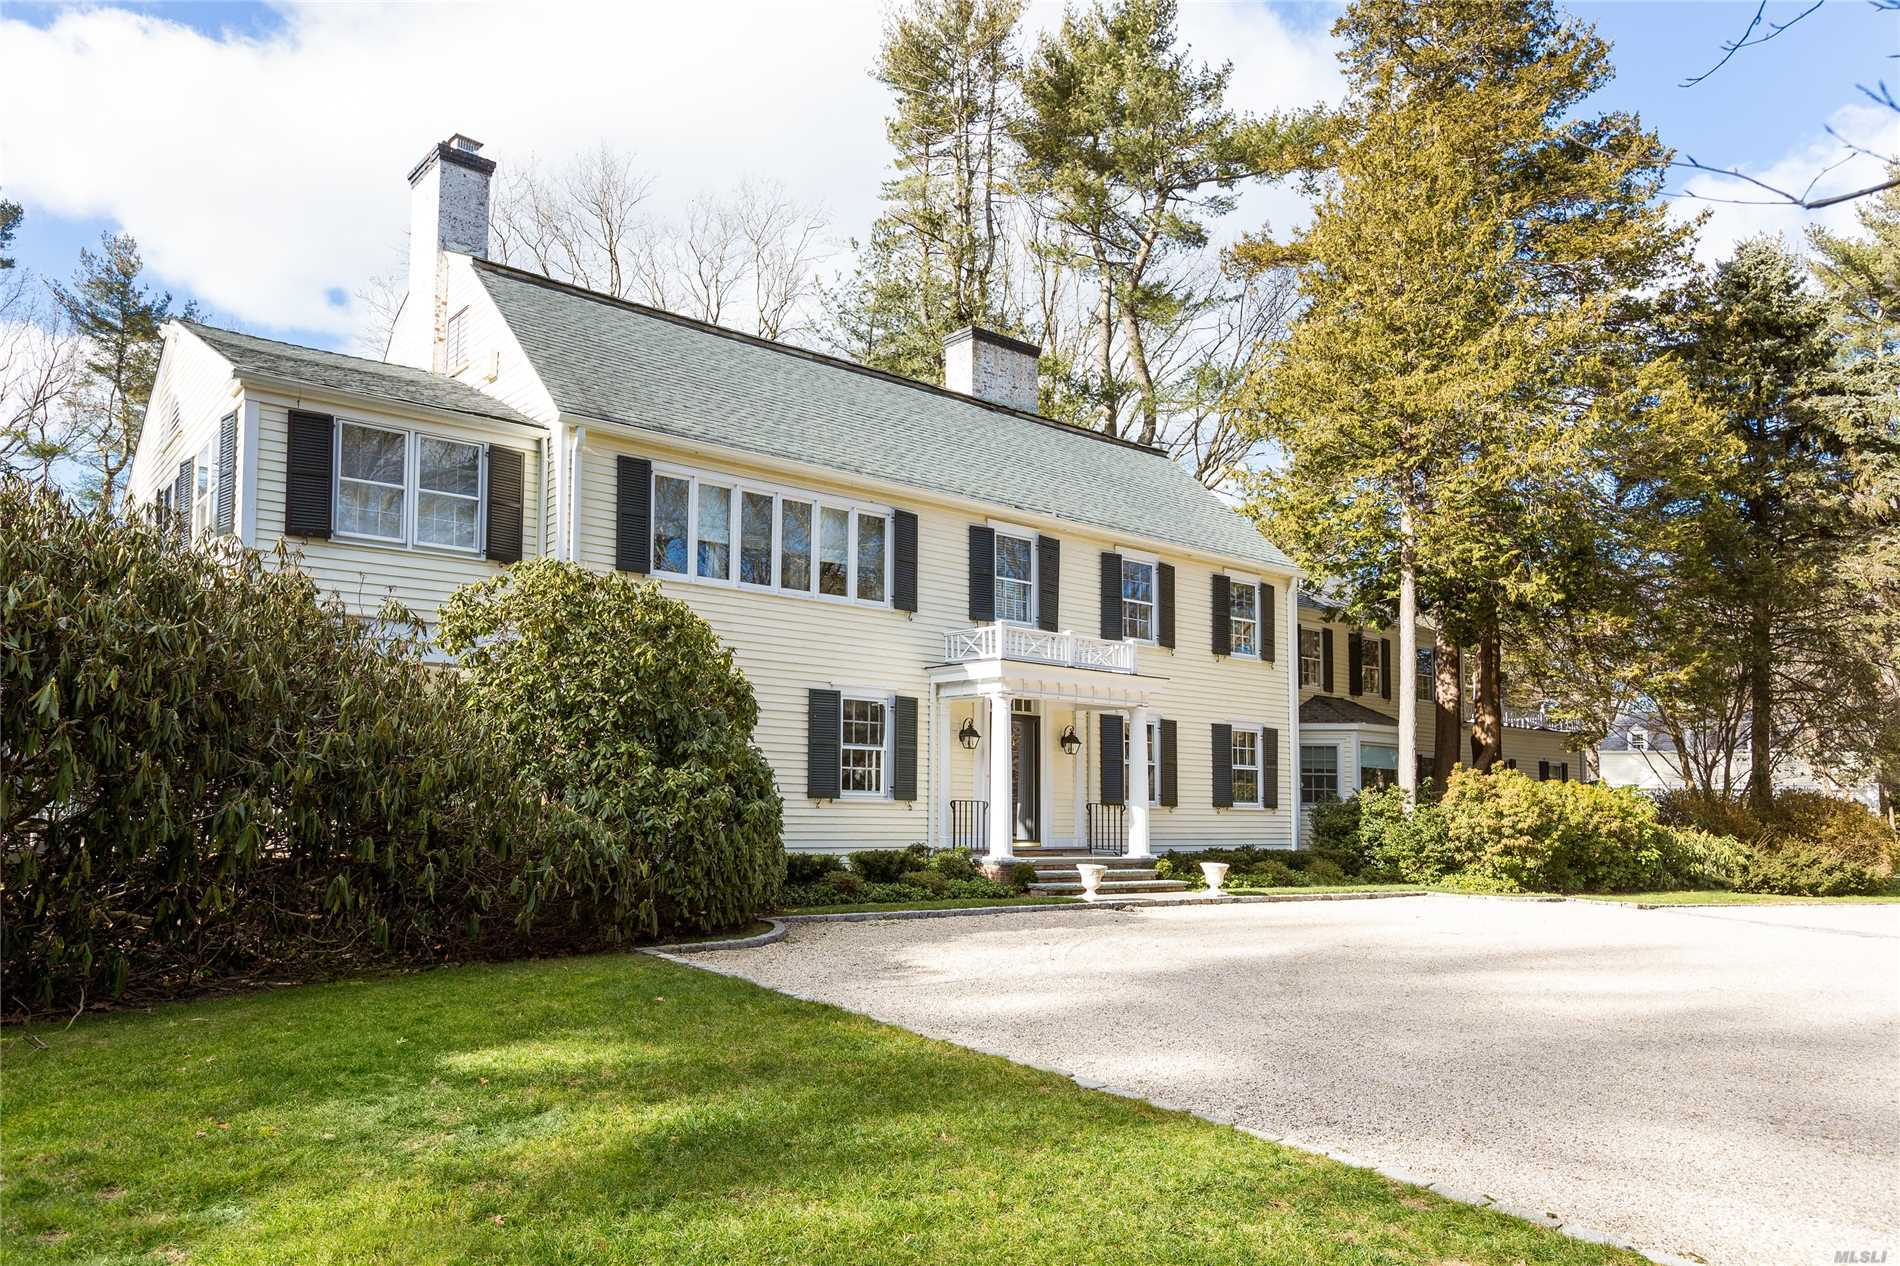 Old World Charm Exudes This 6 Bedroom Colonial Built In 1900, Updated In 2018. Brand New Kitchen And Family Rm. Fabulous Flat Land And Landscaping, Ig Pool, Plus A Two Bedroom Apt Over The 4 Car Garage And Greenhouse. Legal Two Acre Building Lot Partitioned. Walk To Town, Shopping And Train.